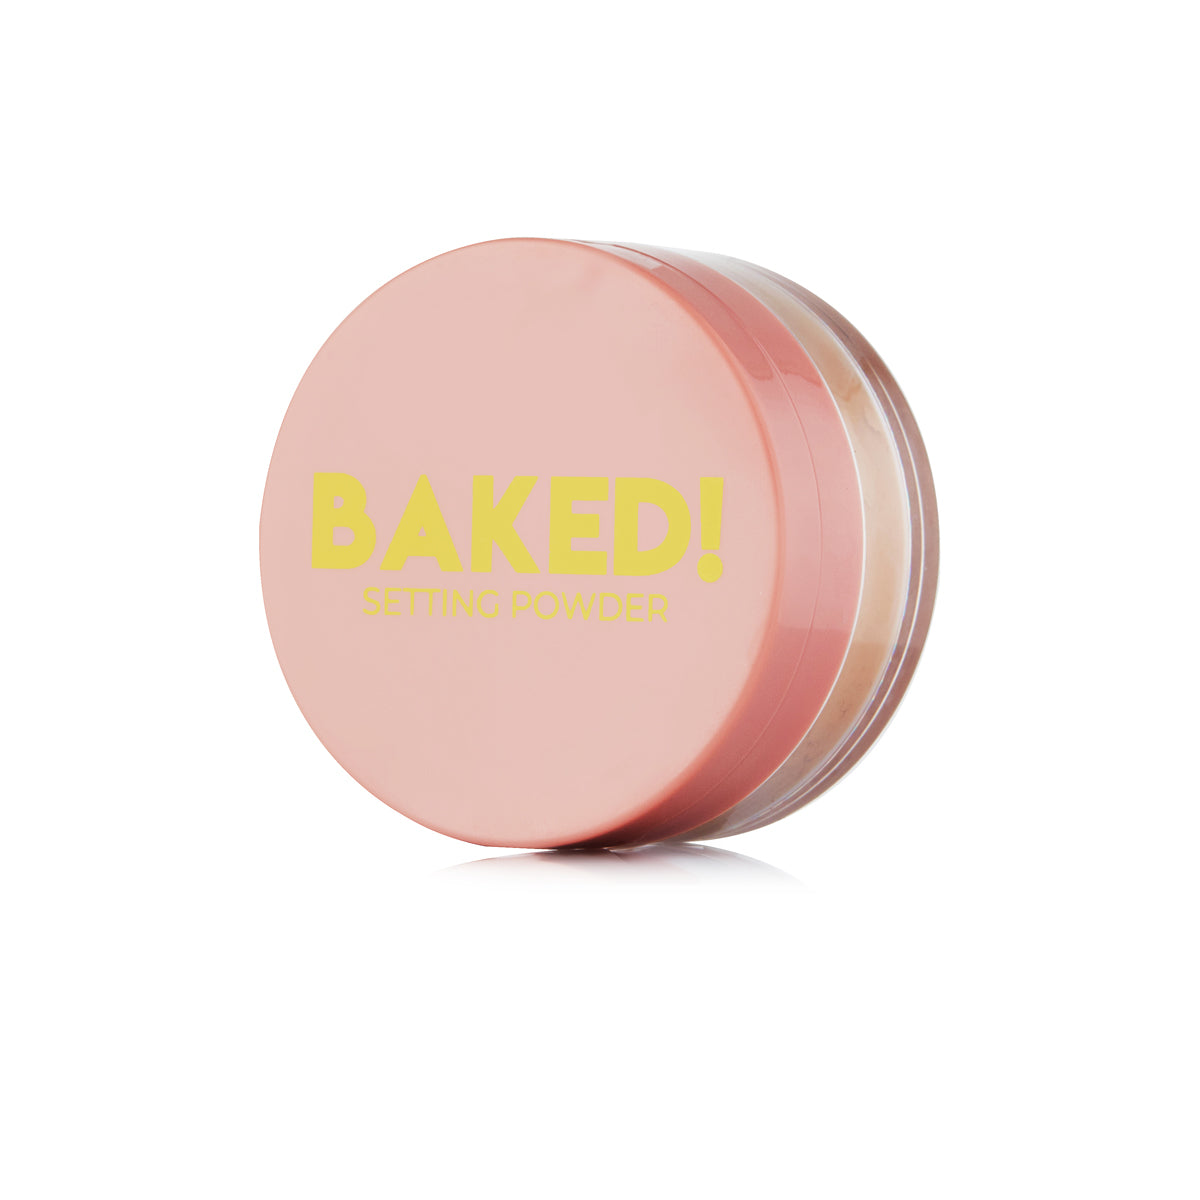 BAKED! Holiday Setting Powder - Coconut